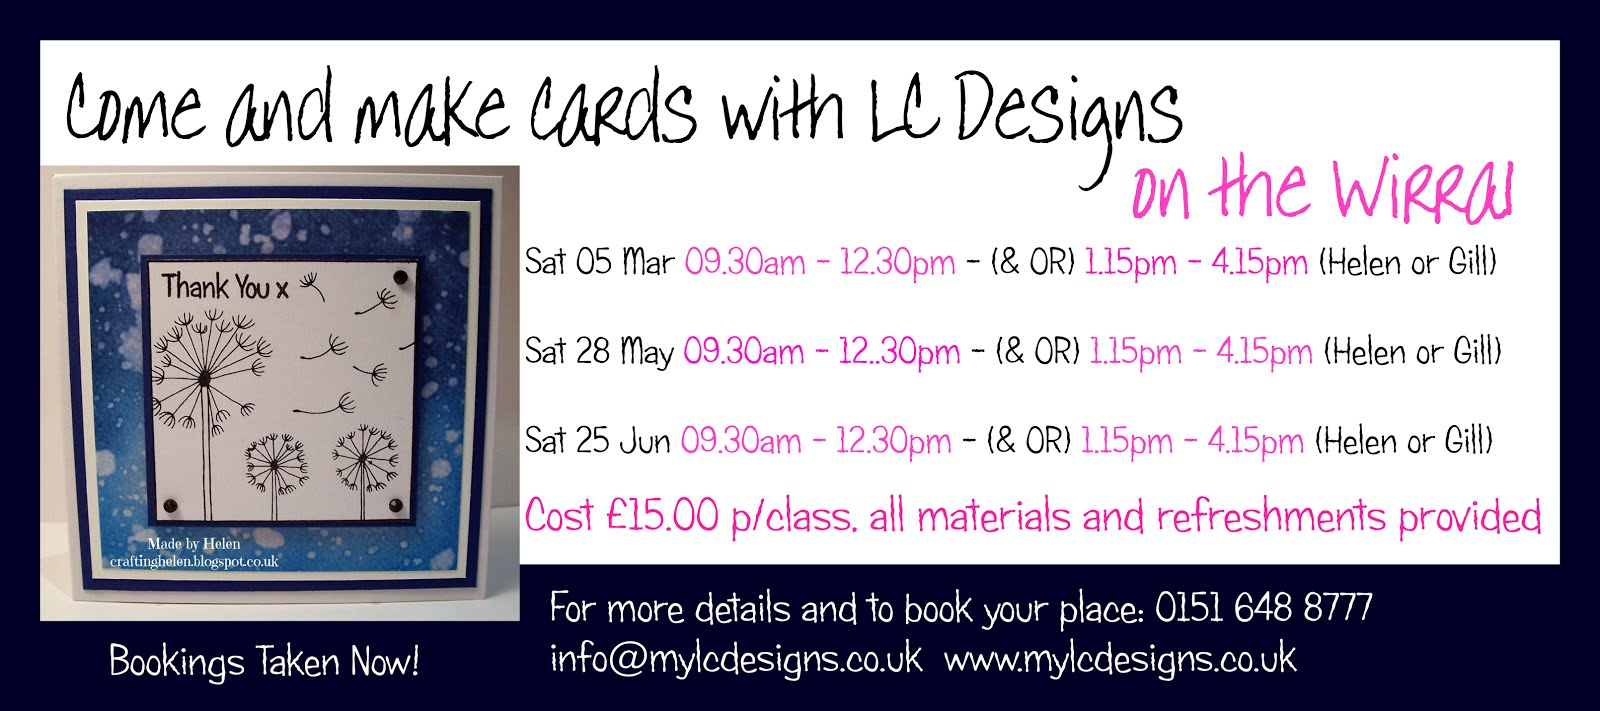 LC Designs Workshops